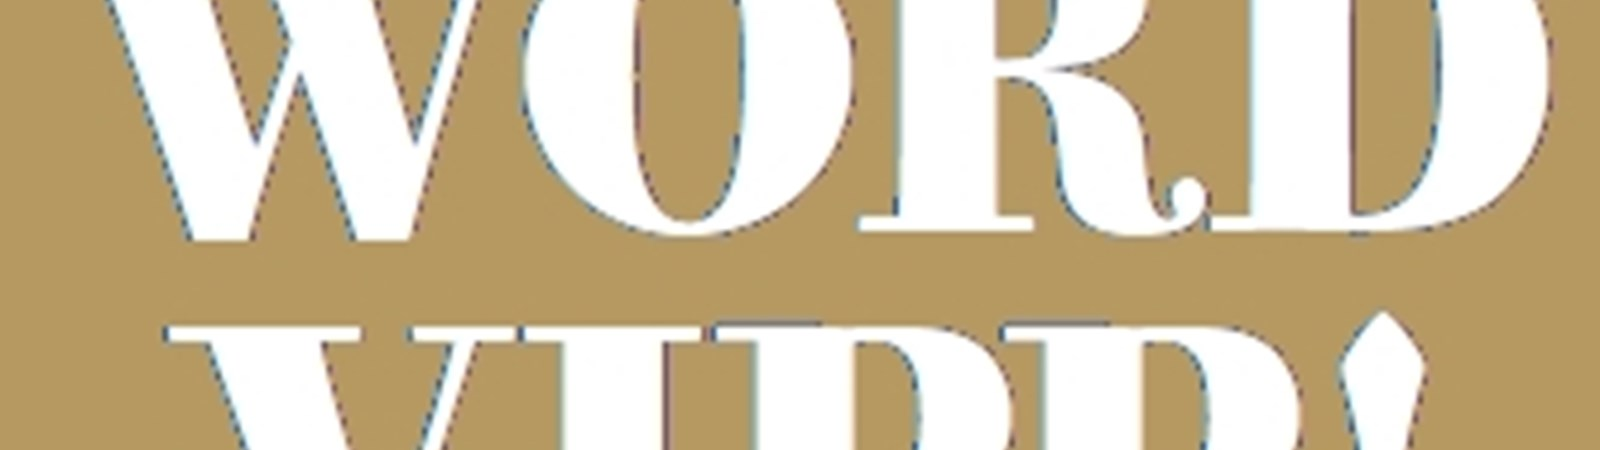 WORD GOLD VIPP logo.jpg